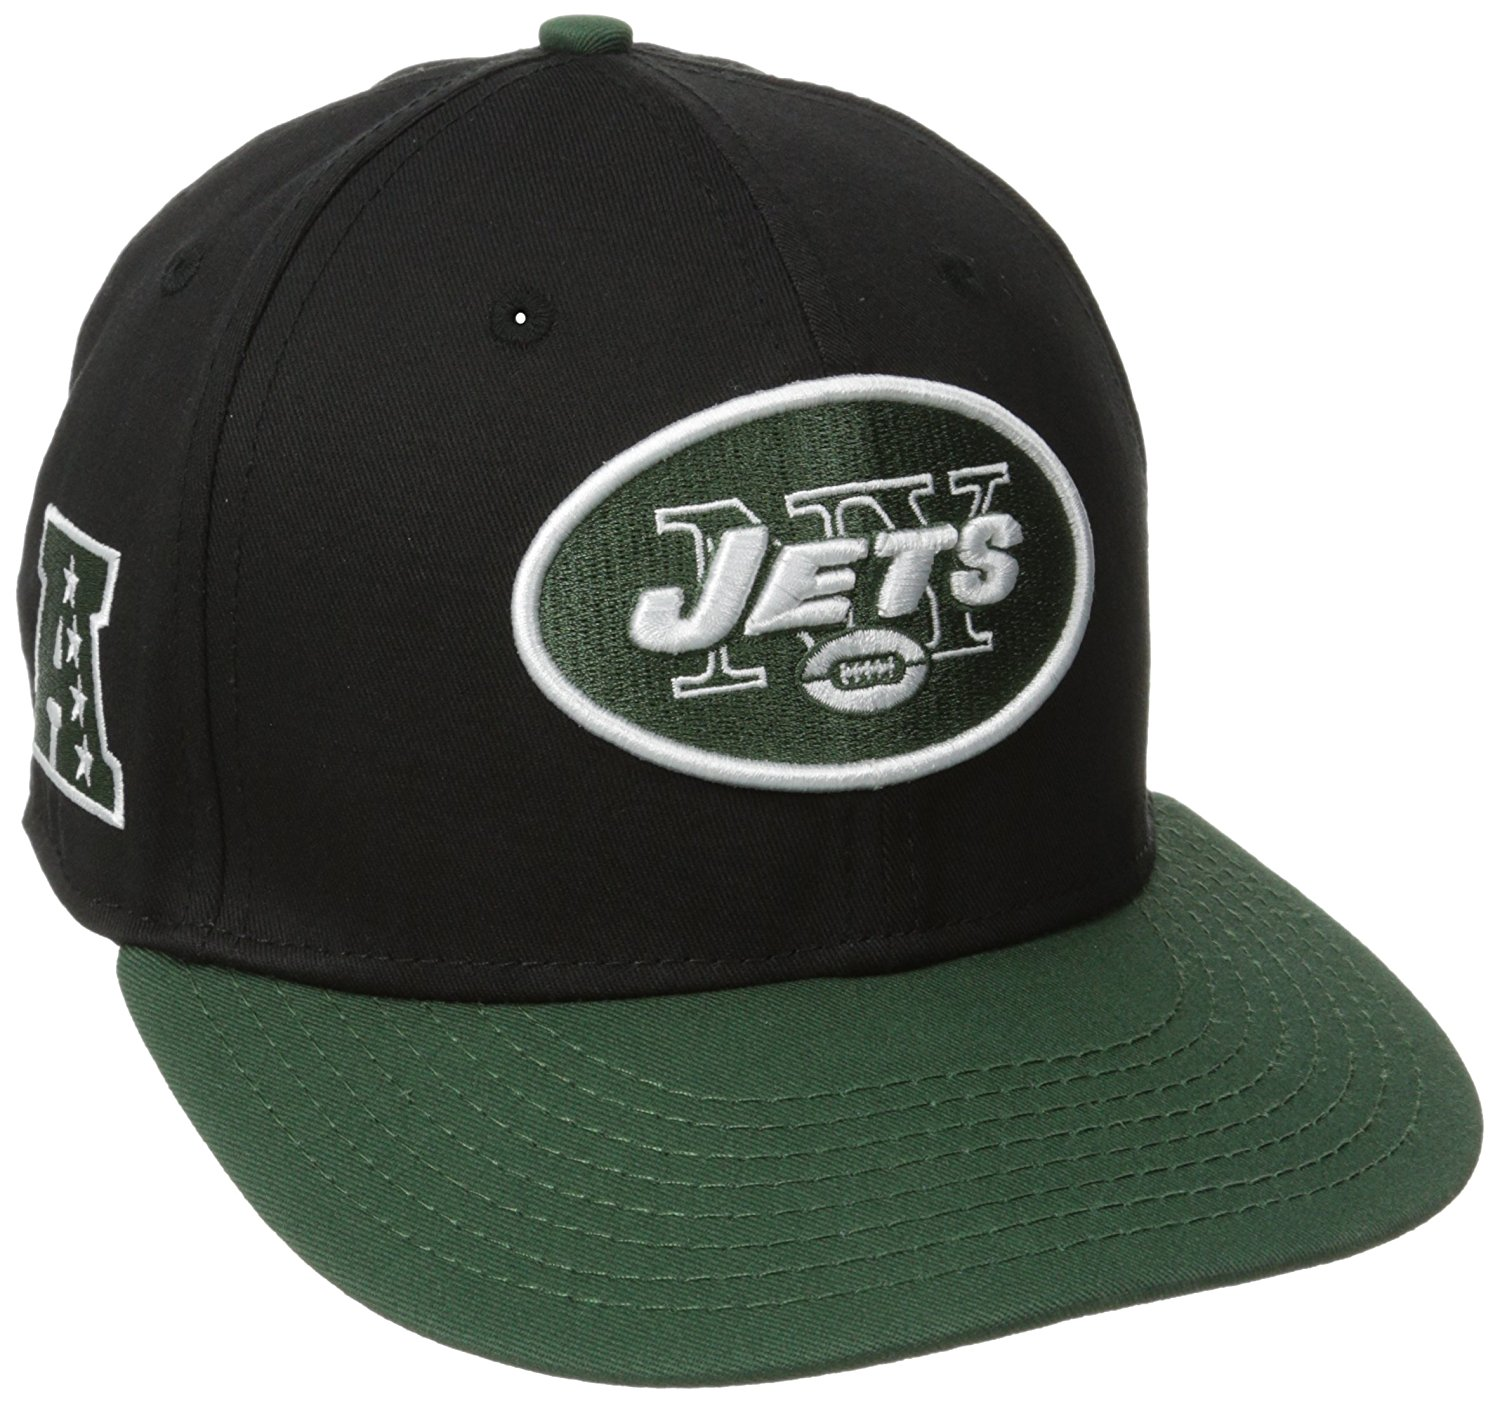 Get Quotations · NFL New York Jets Baycik 9Fifty Snapback Hat 38f791e1d